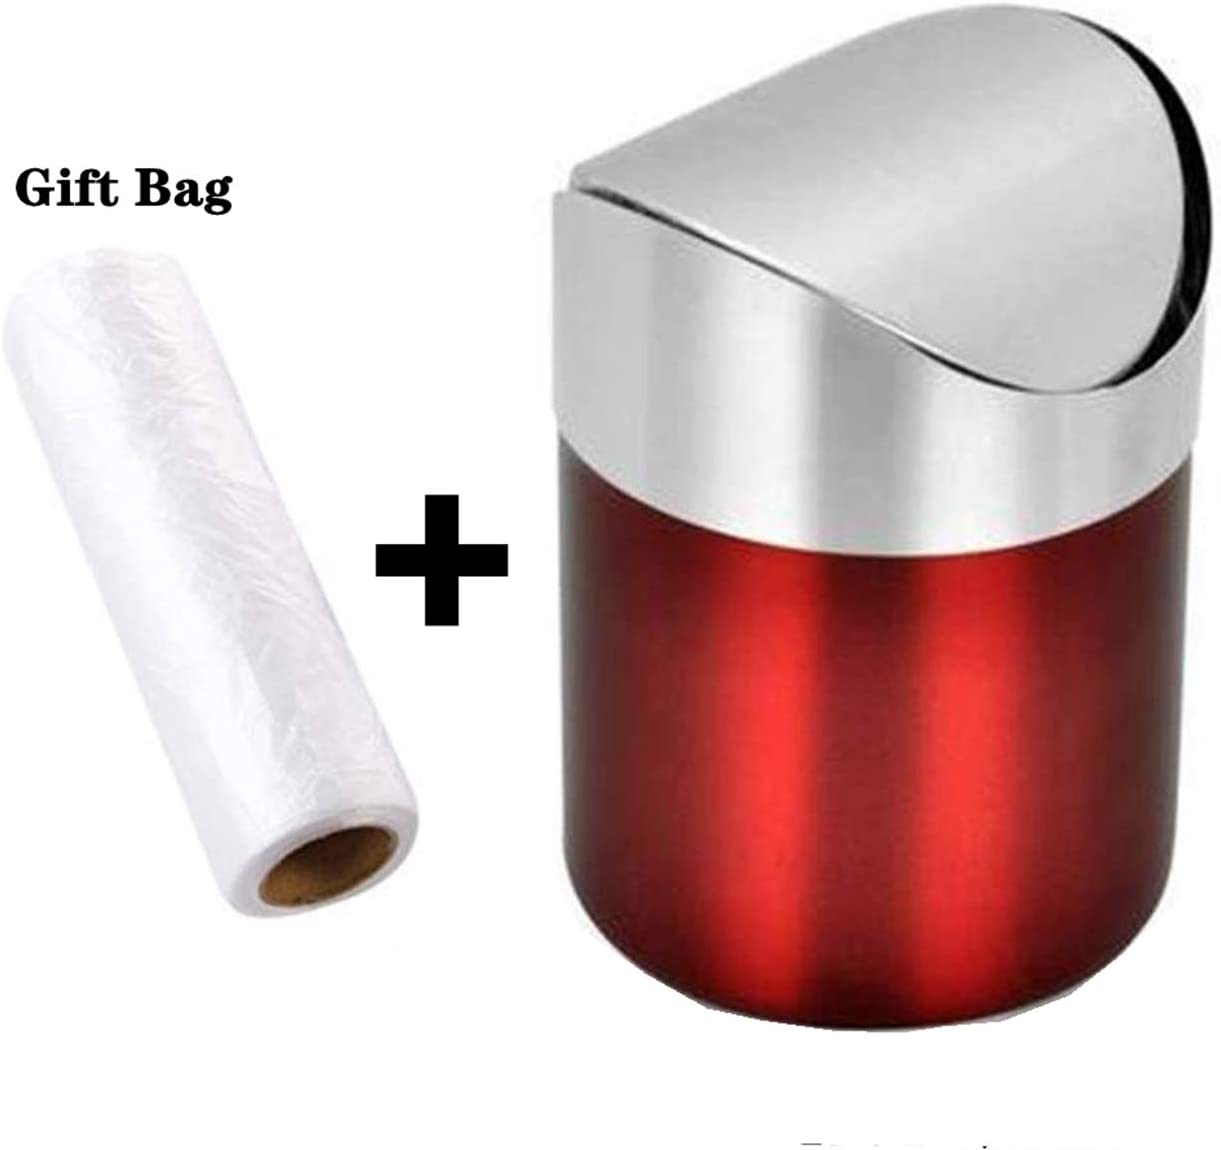 Countertop Brushed Stainless Steel Swing Lid Table Desk Car Mini Trash Can Trash Bin Set, Come with Trash Bag, 1.5 L / 0.40 Gal, 5 Color Options, Red